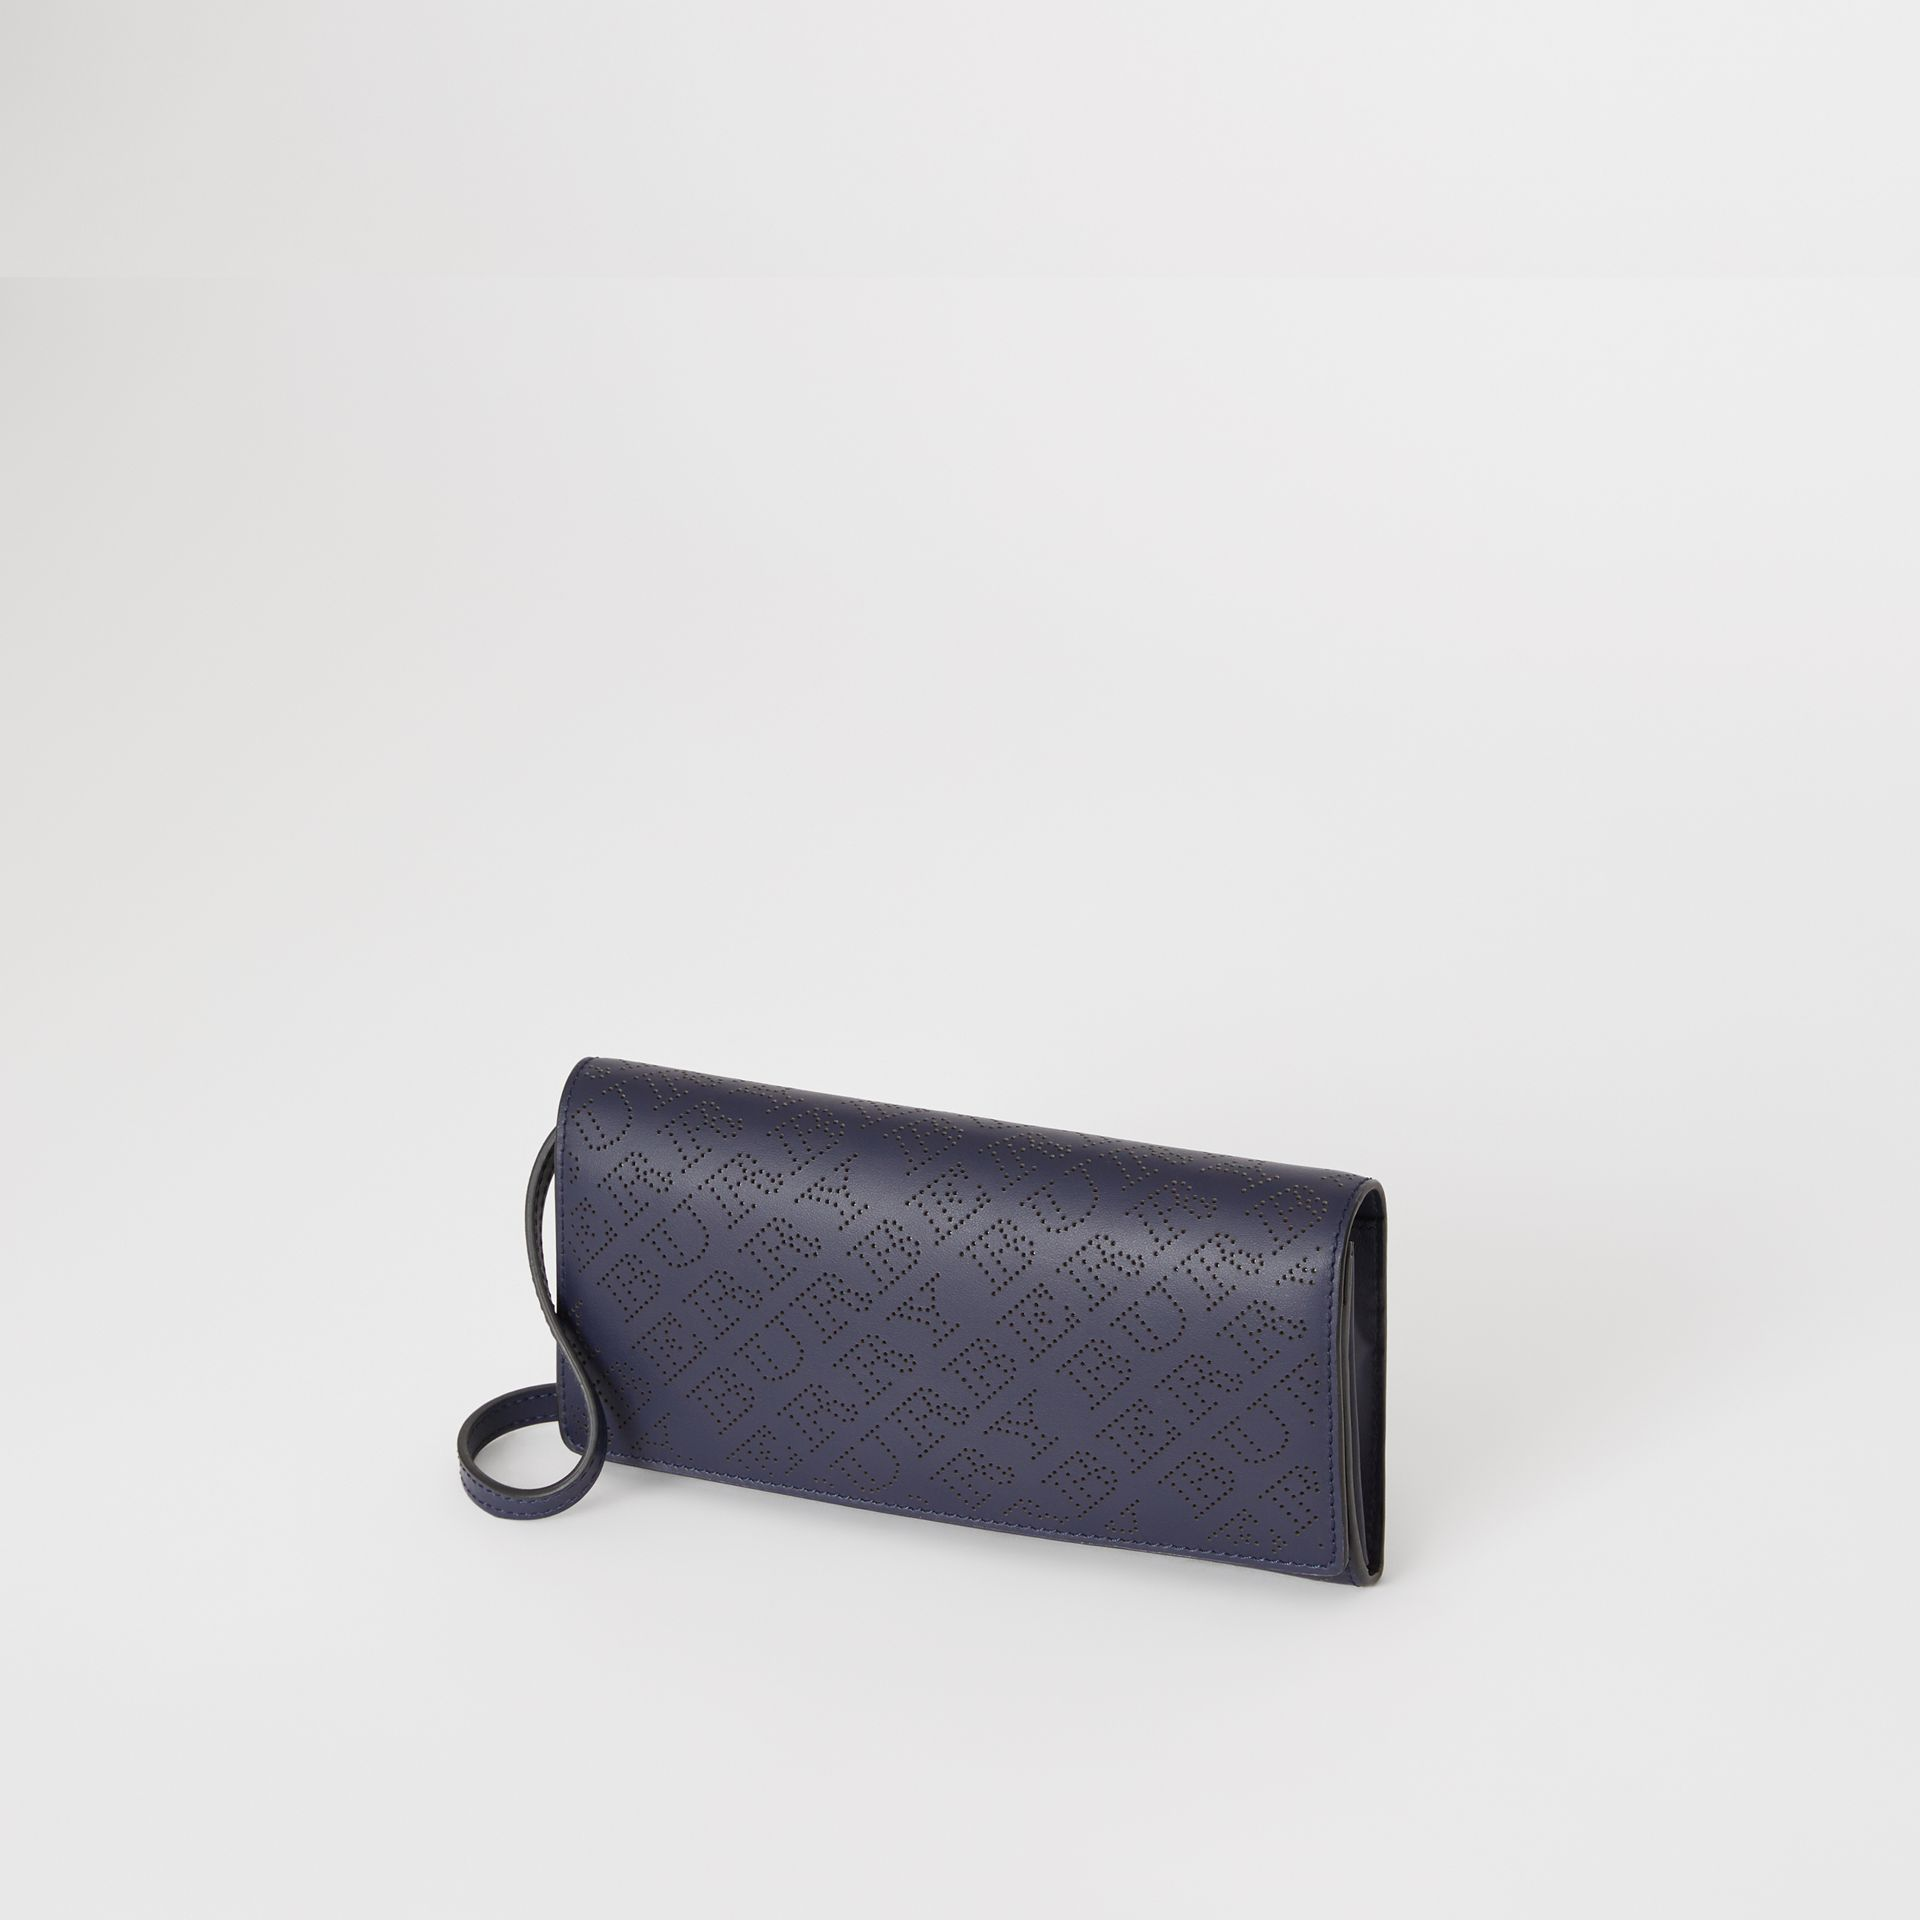 Perforated Logo Leather Wallet with Detachable Strap in Navy - Women | Burberry United Kingdom - gallery image 4